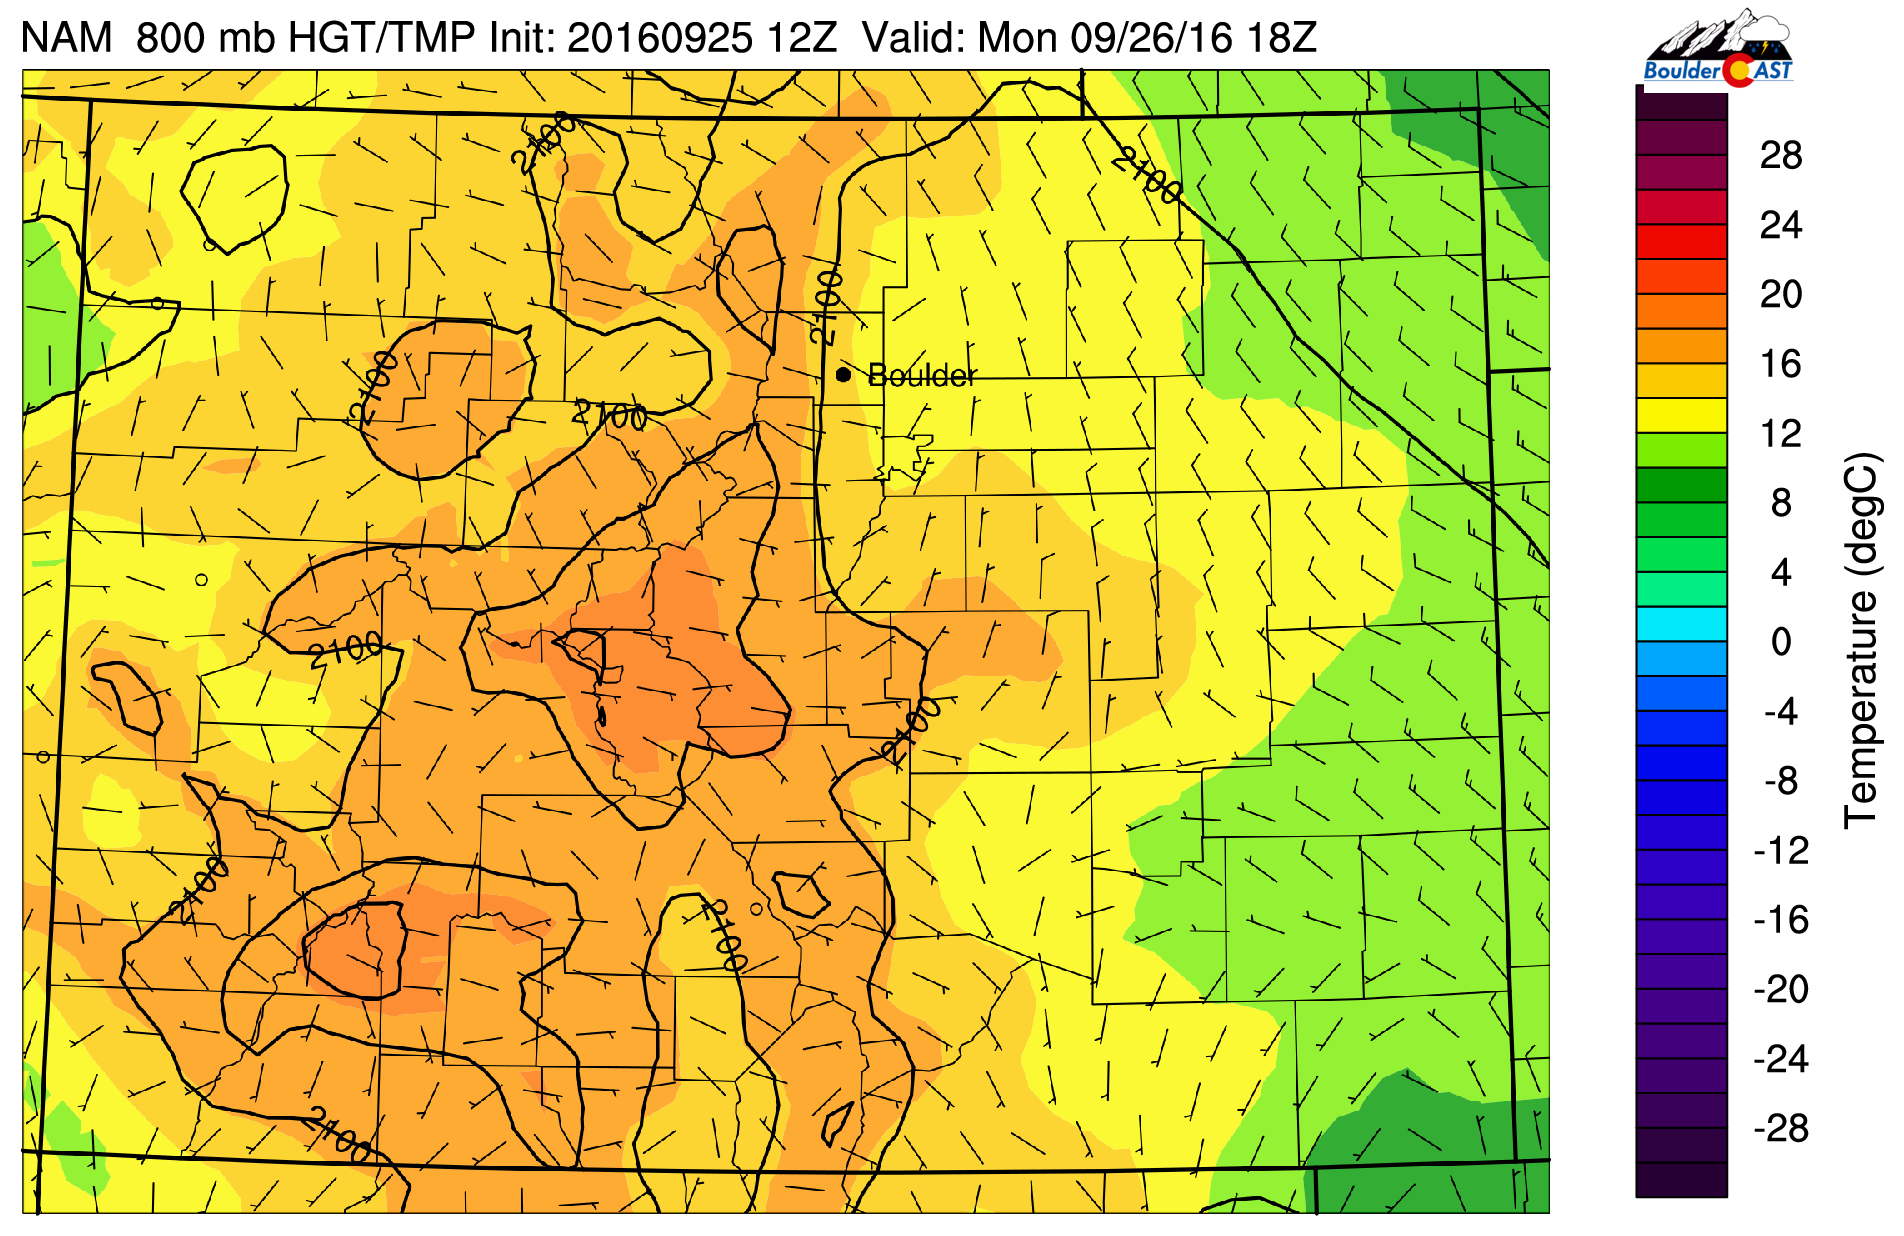 NAM 800 mb temperature and wind pattern today